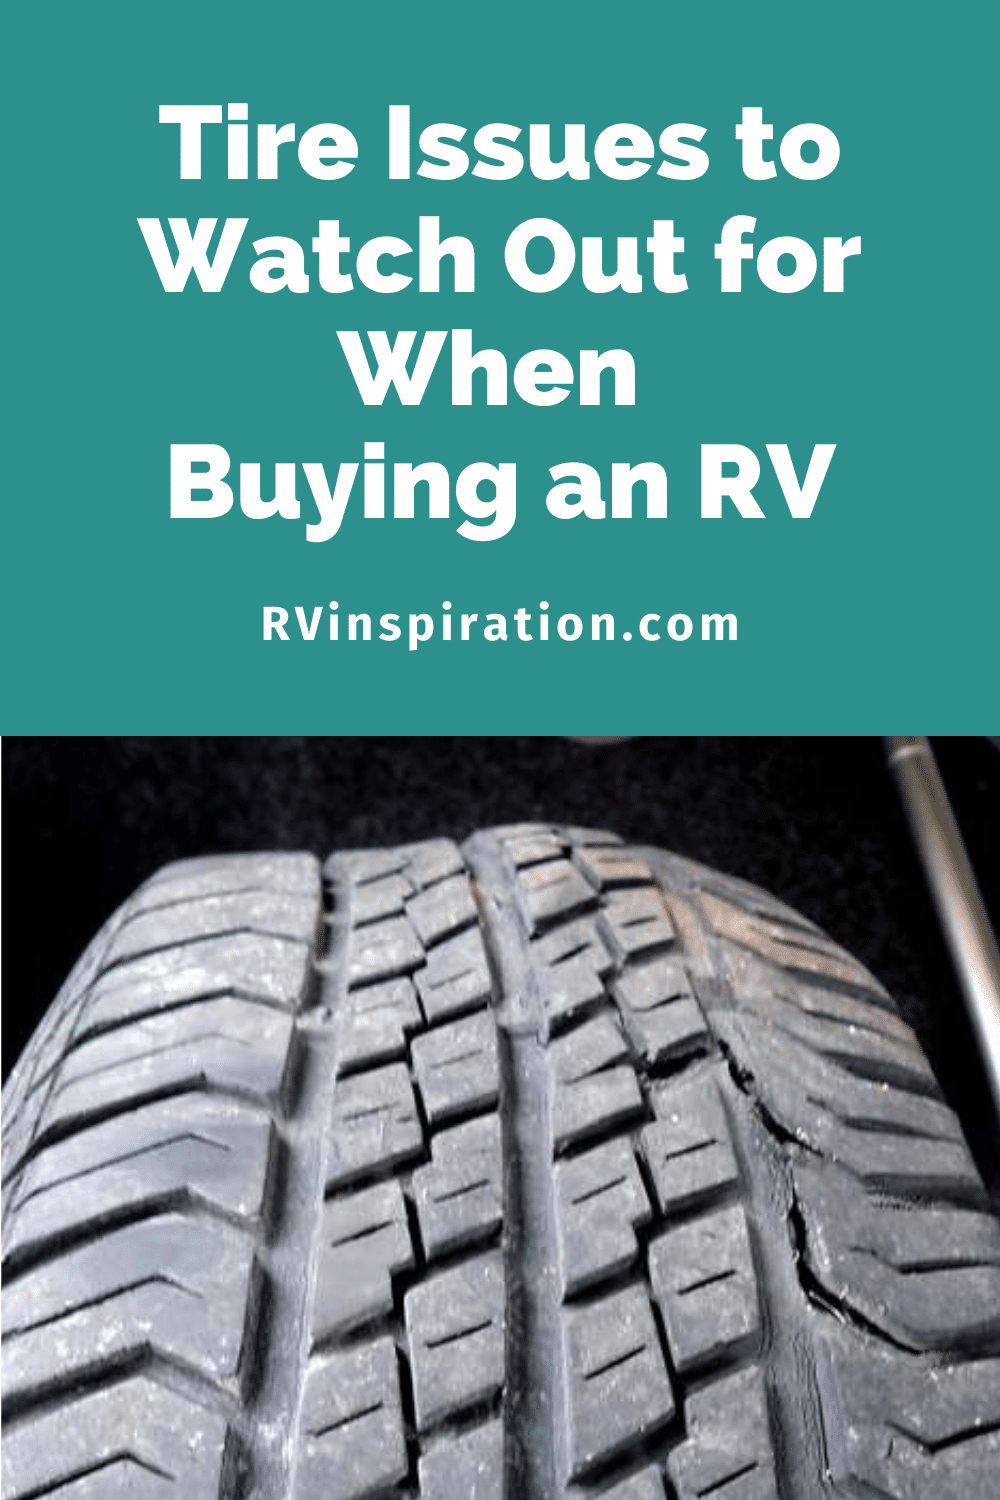 How to identify dry rot and other signs of tire wear during an inspection when buying an RV | RVinspiration.com